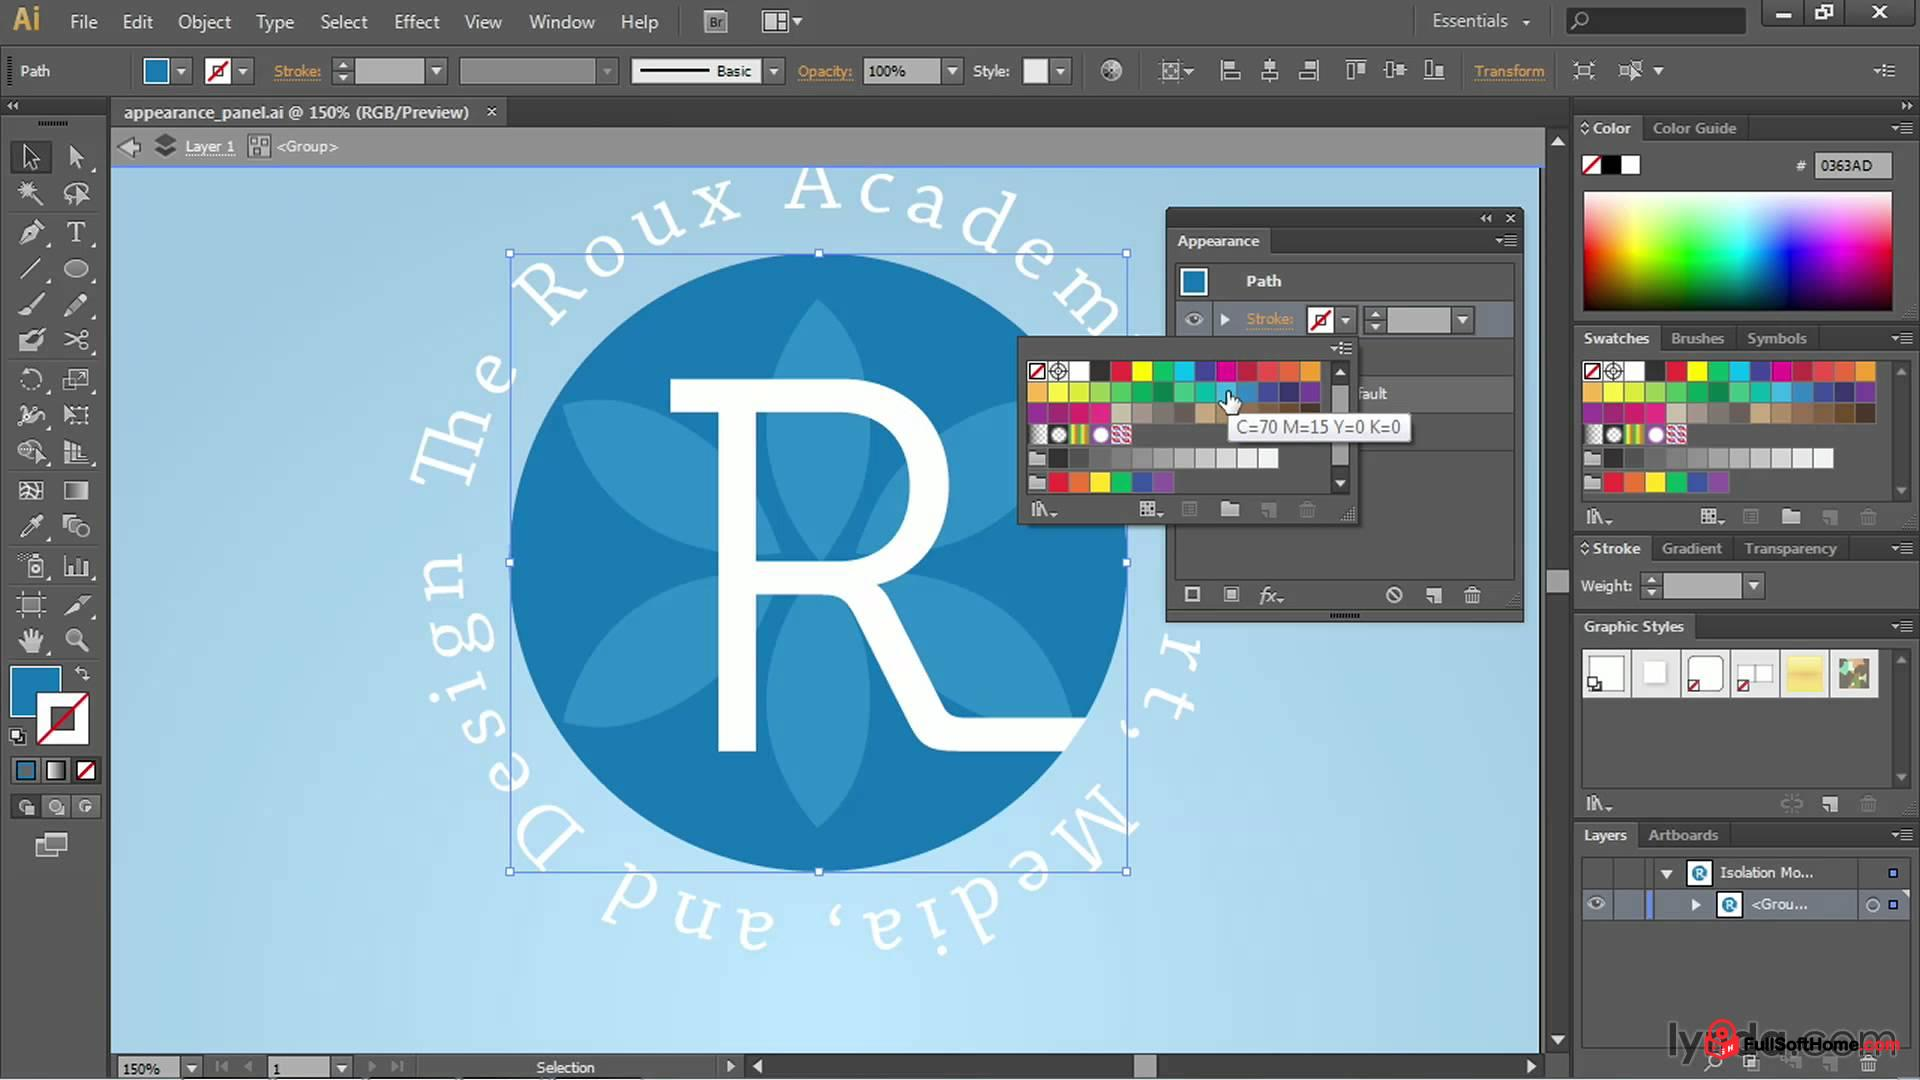 photoshop cc 2019 crack reddit download